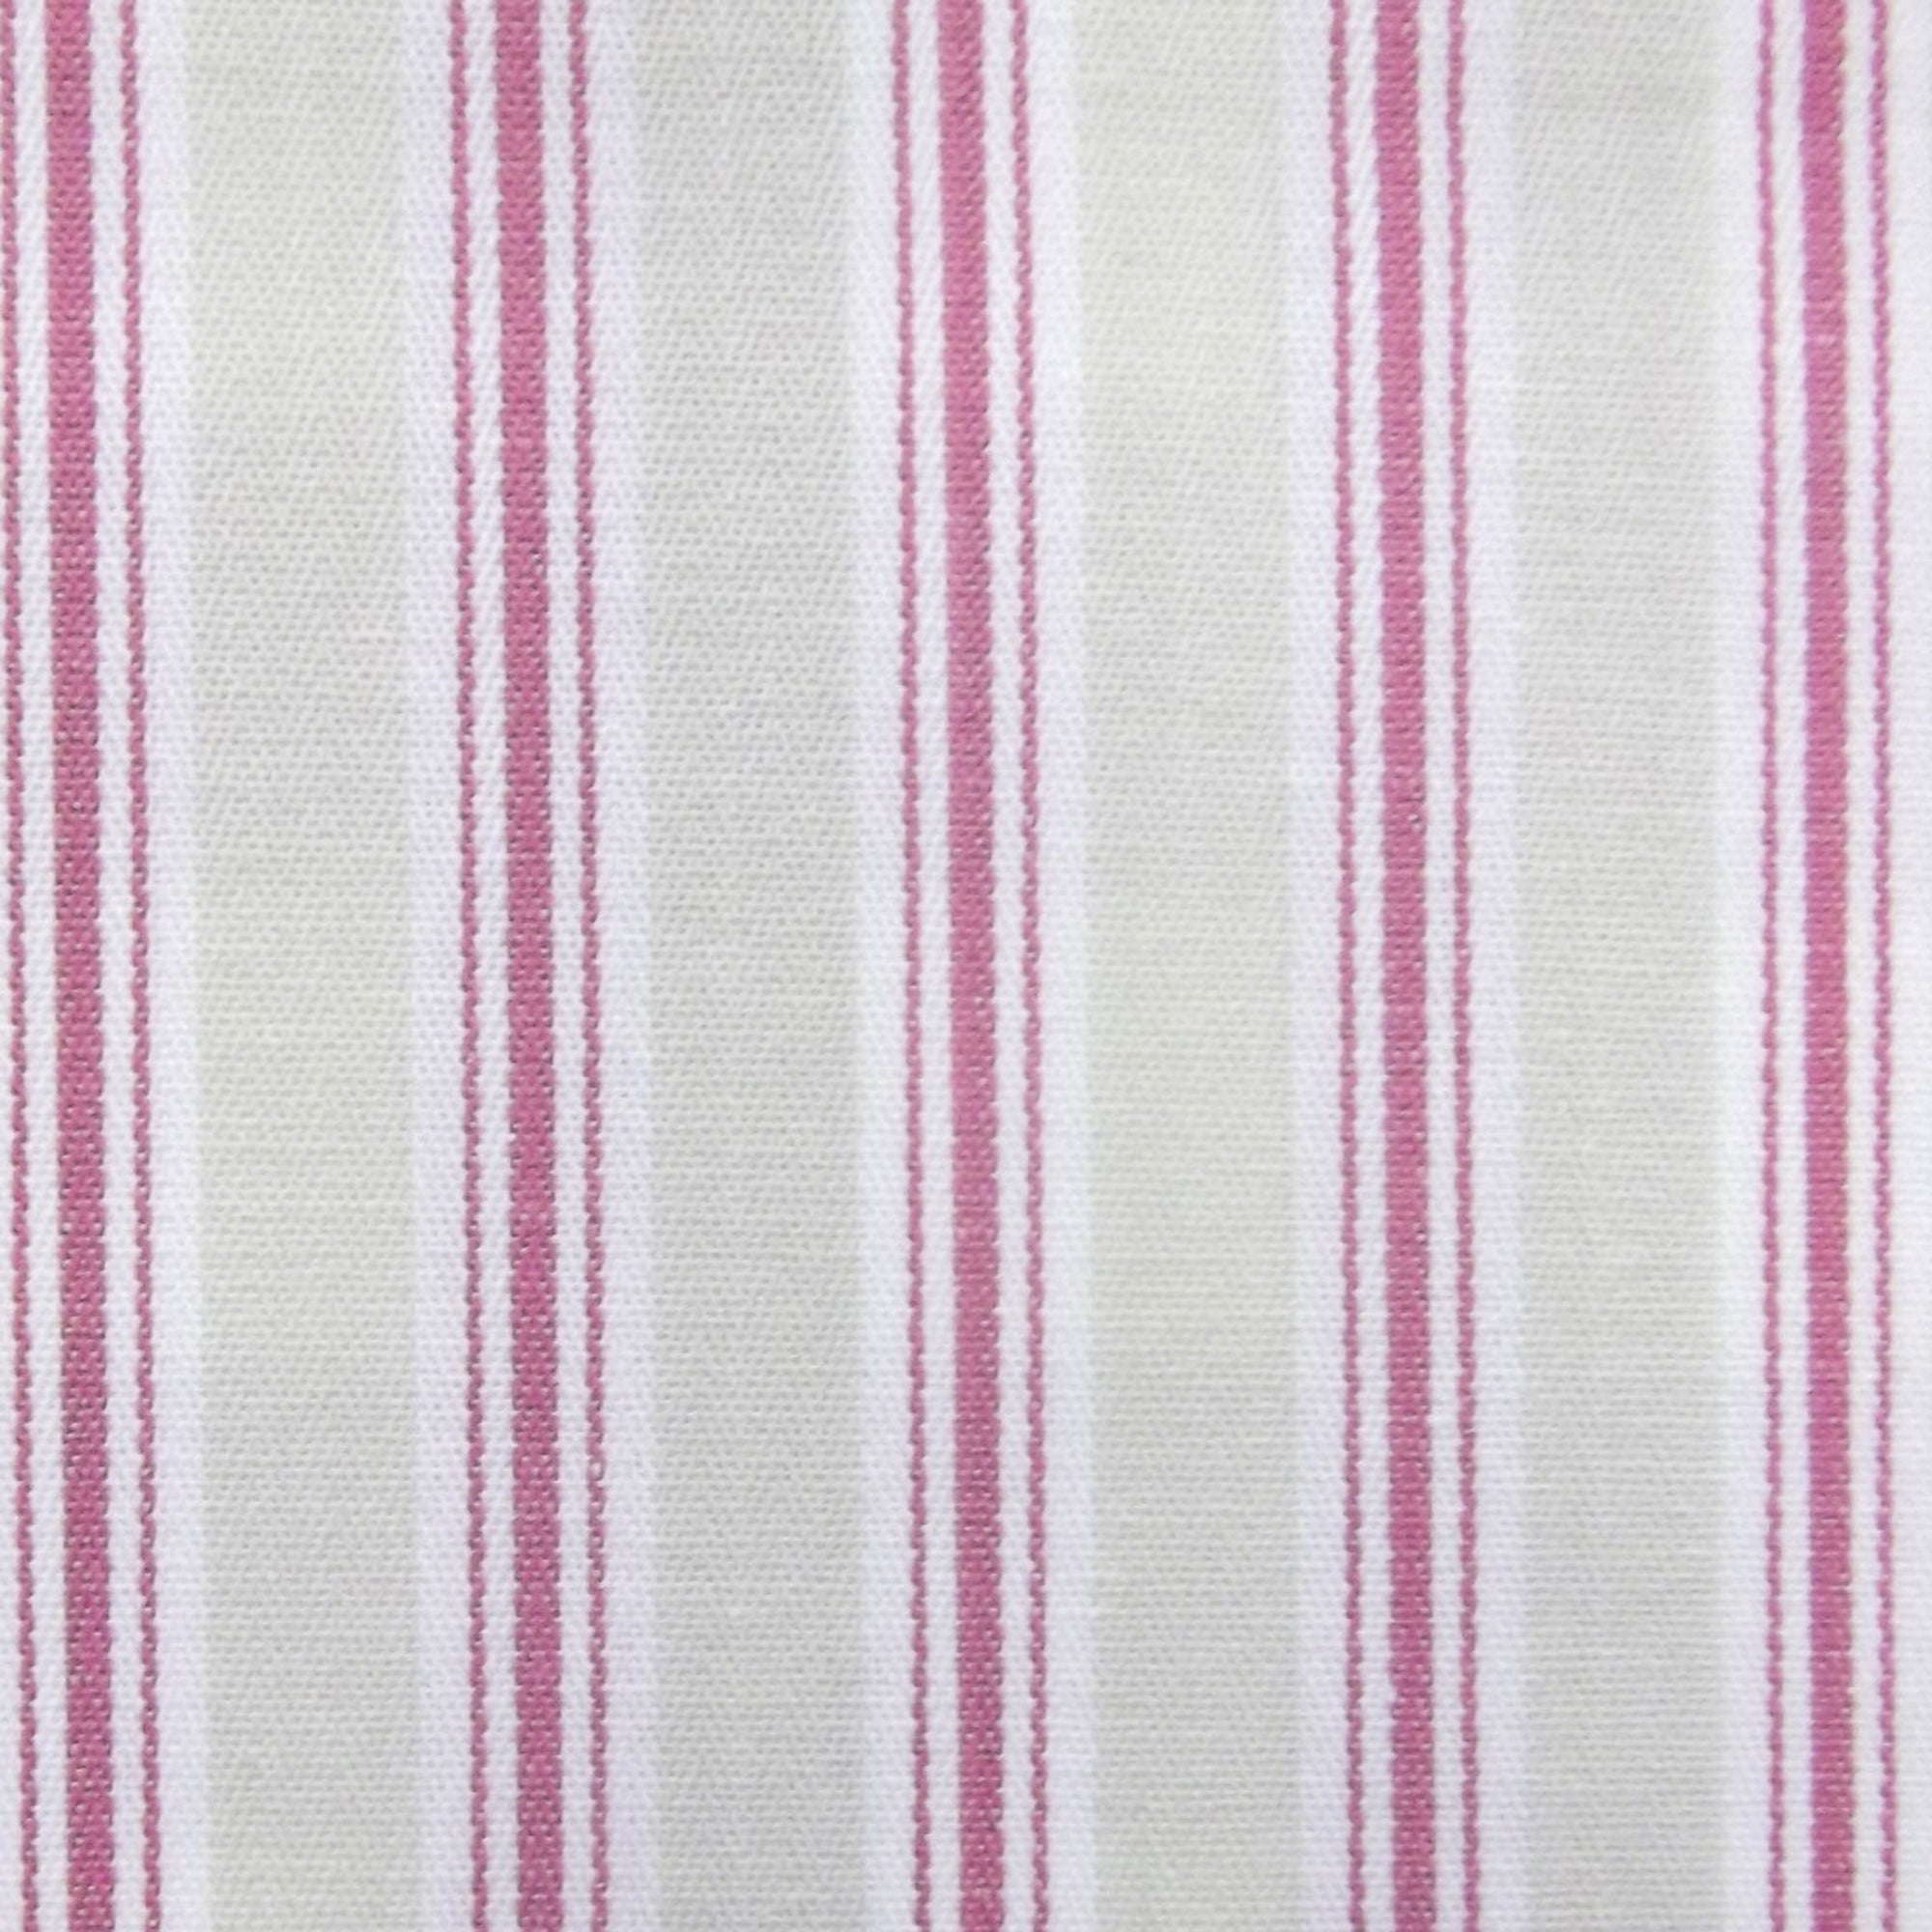 Sorbet Bay Stripe Fabric